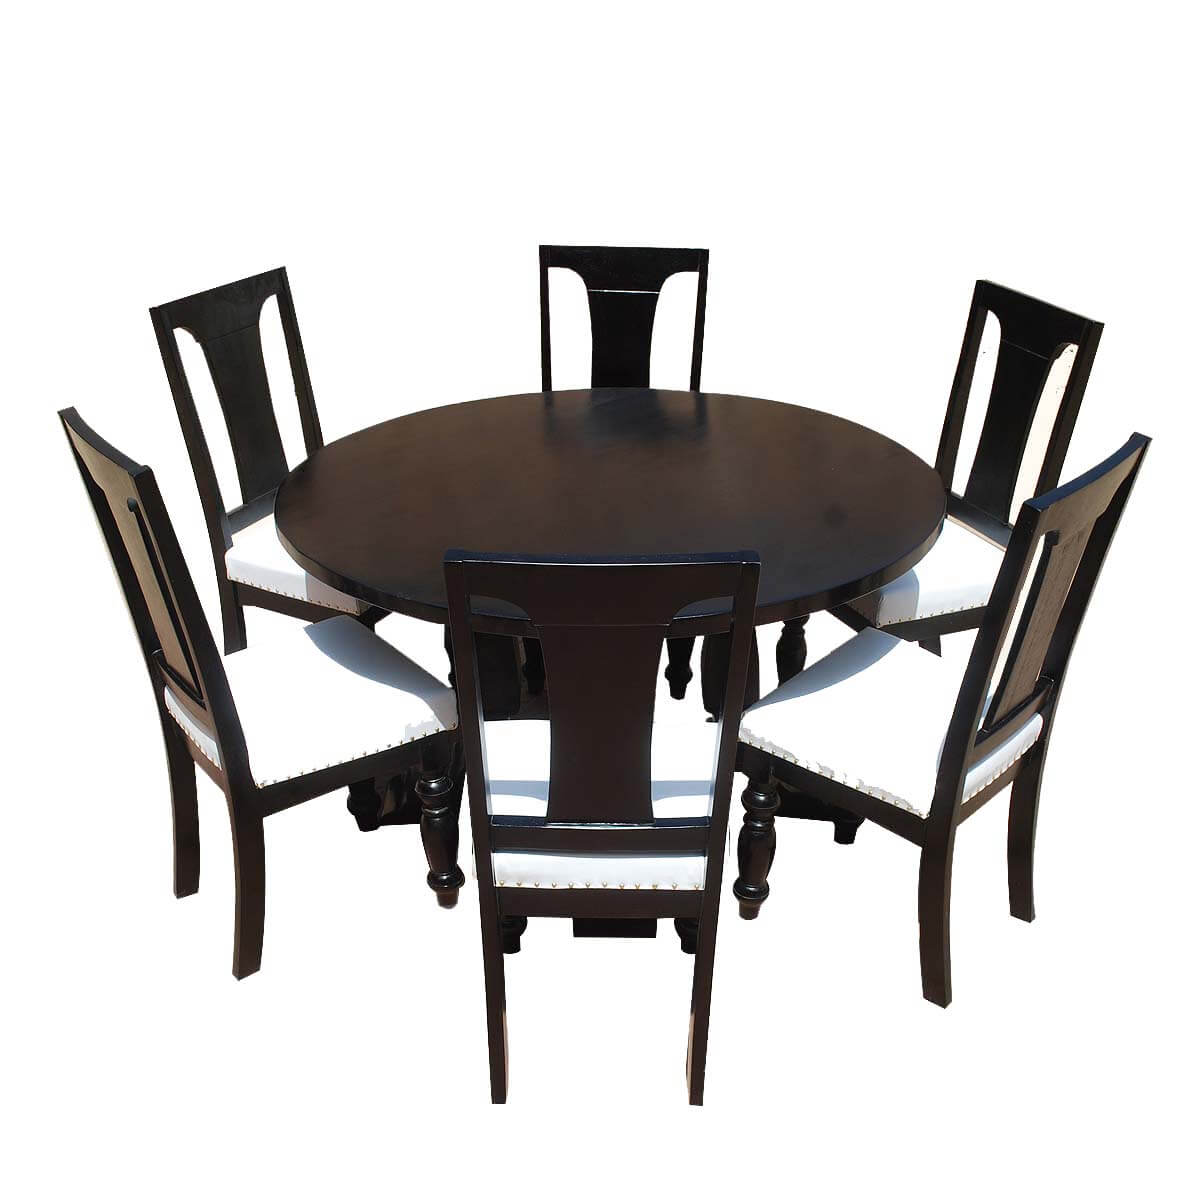 California solid wood leather 7p round dining room set for Wood dining table set